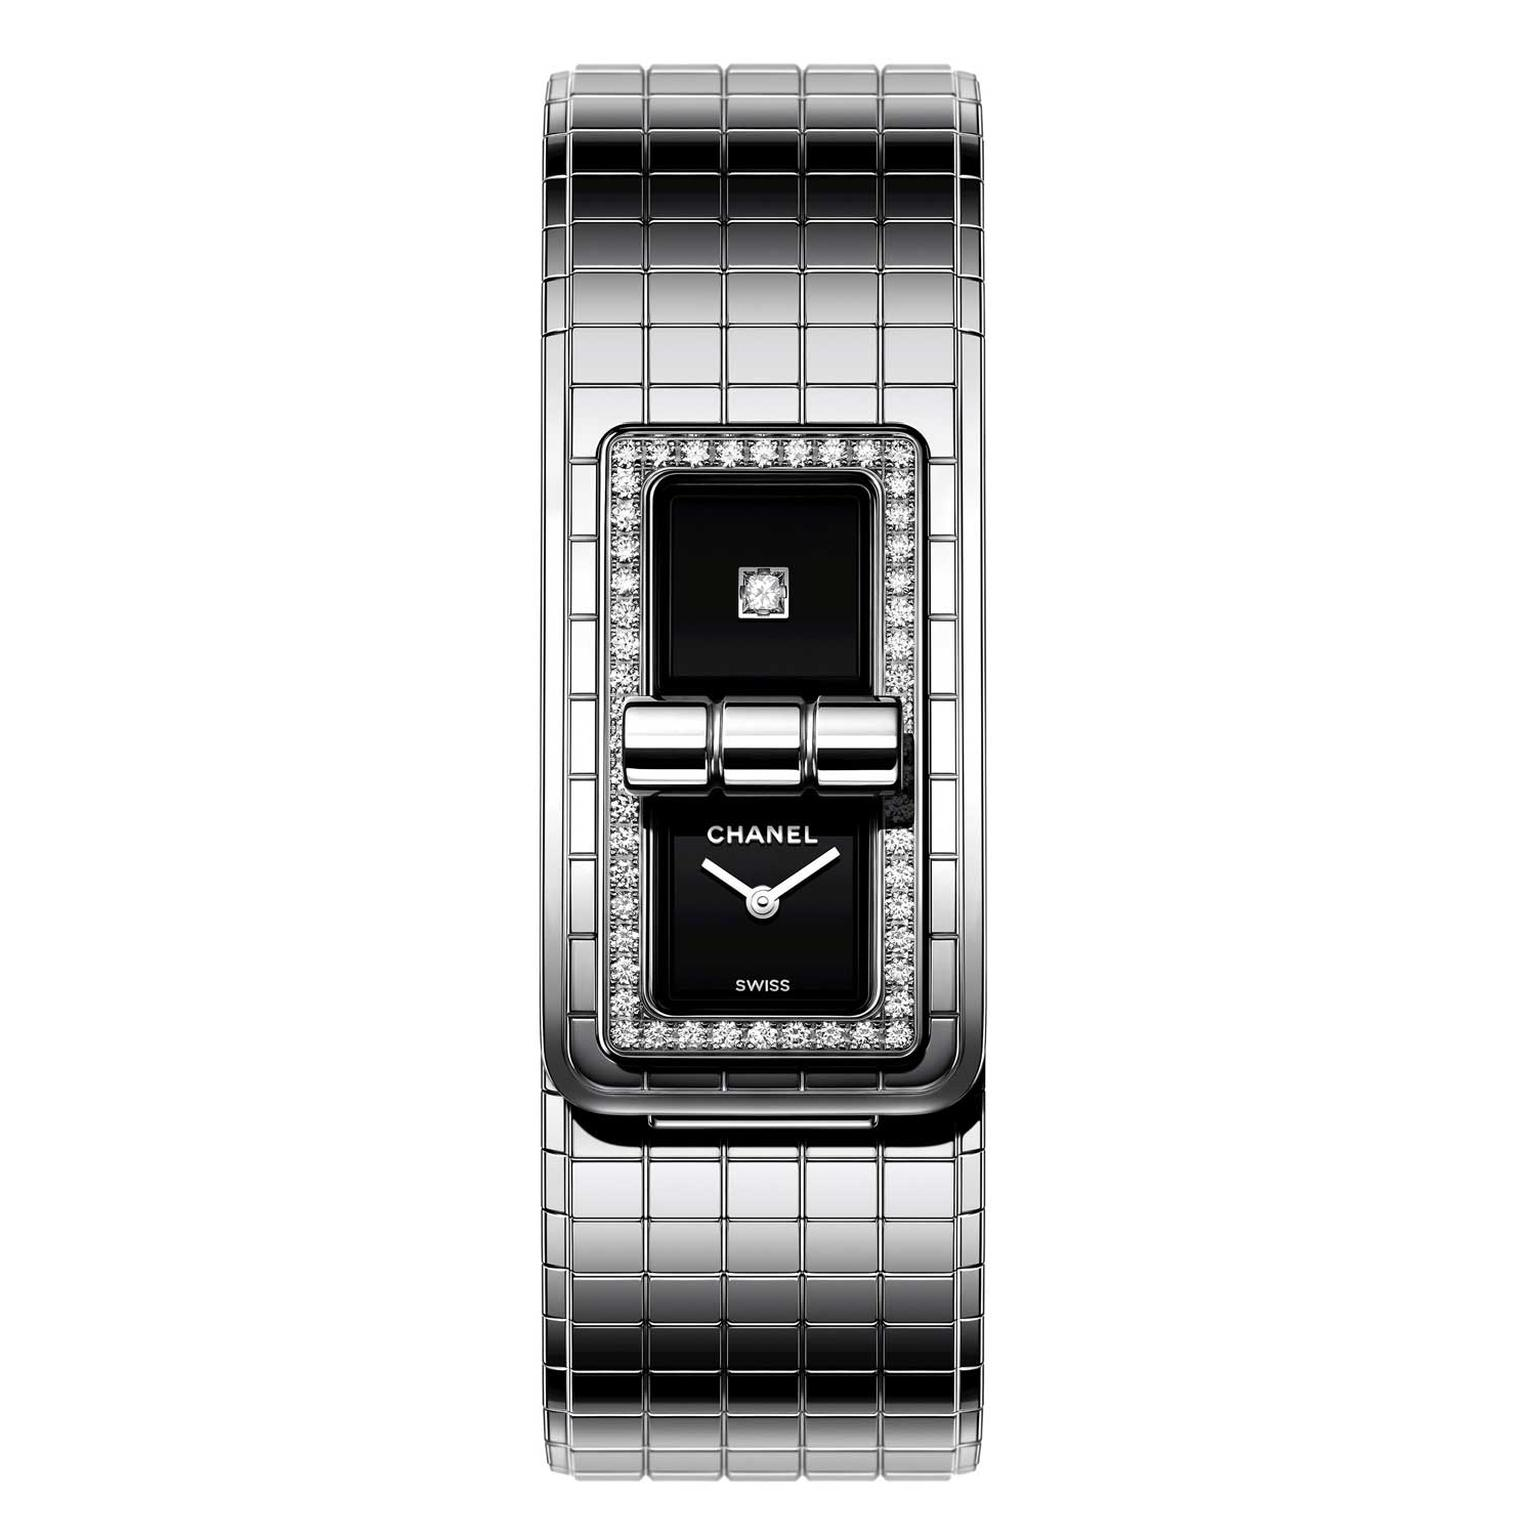 Chanel Code Coco watch with diamonds